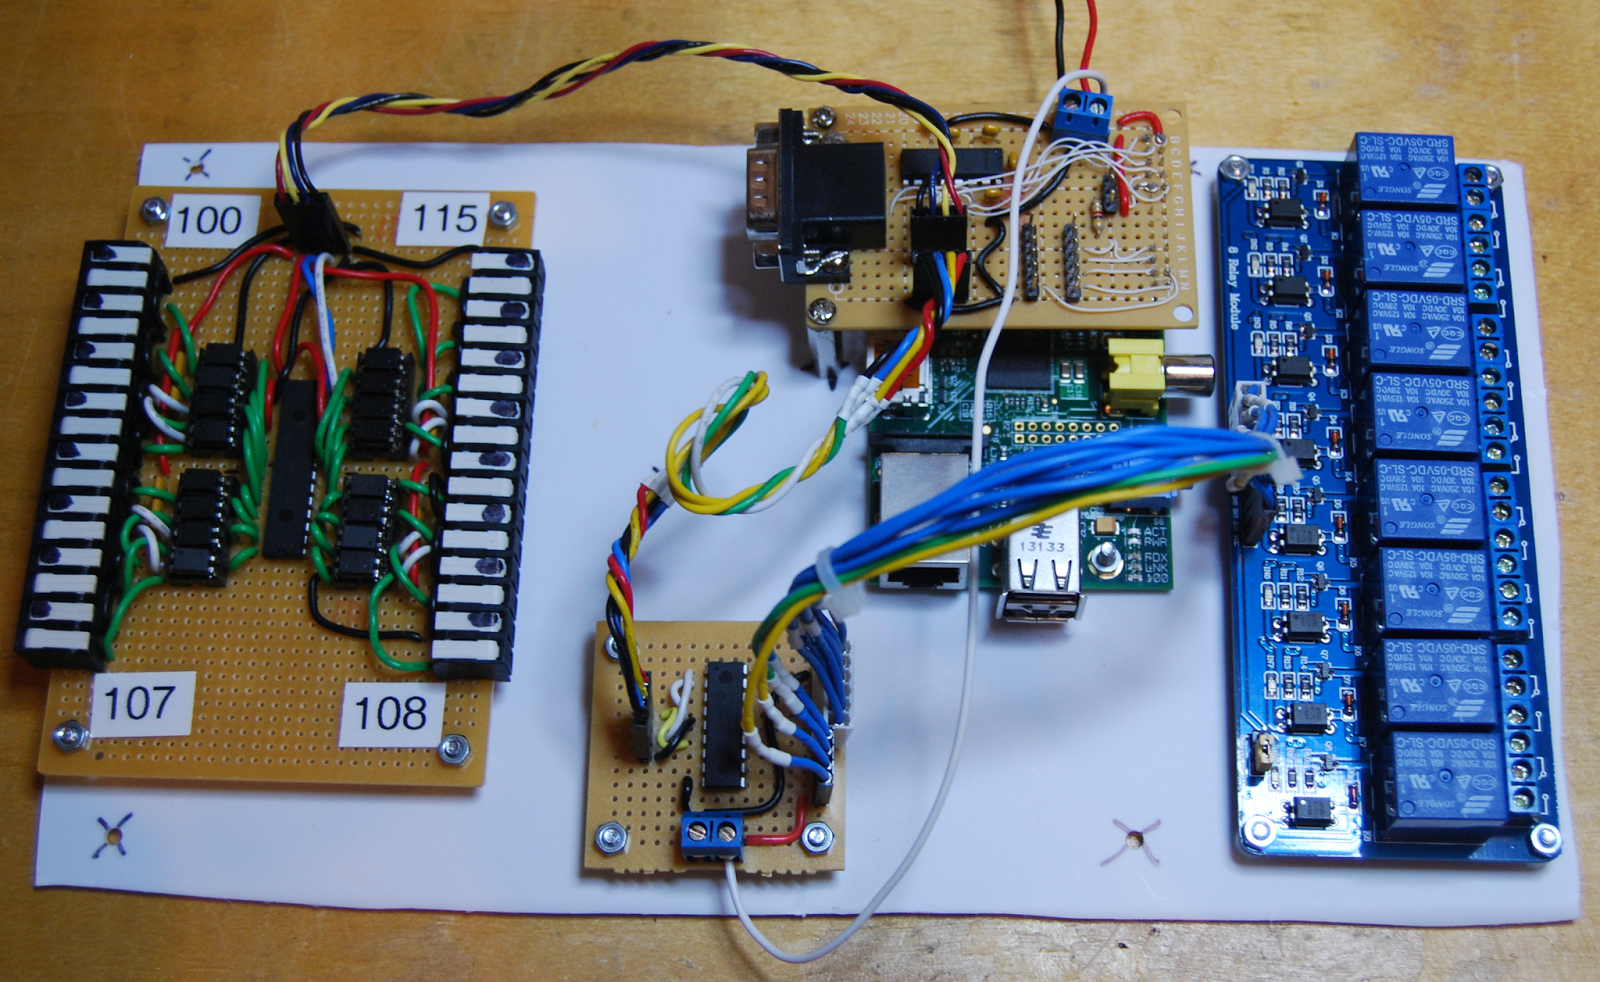 The Raspberry Pi Hobbyist: Improved Alarm/Automation System